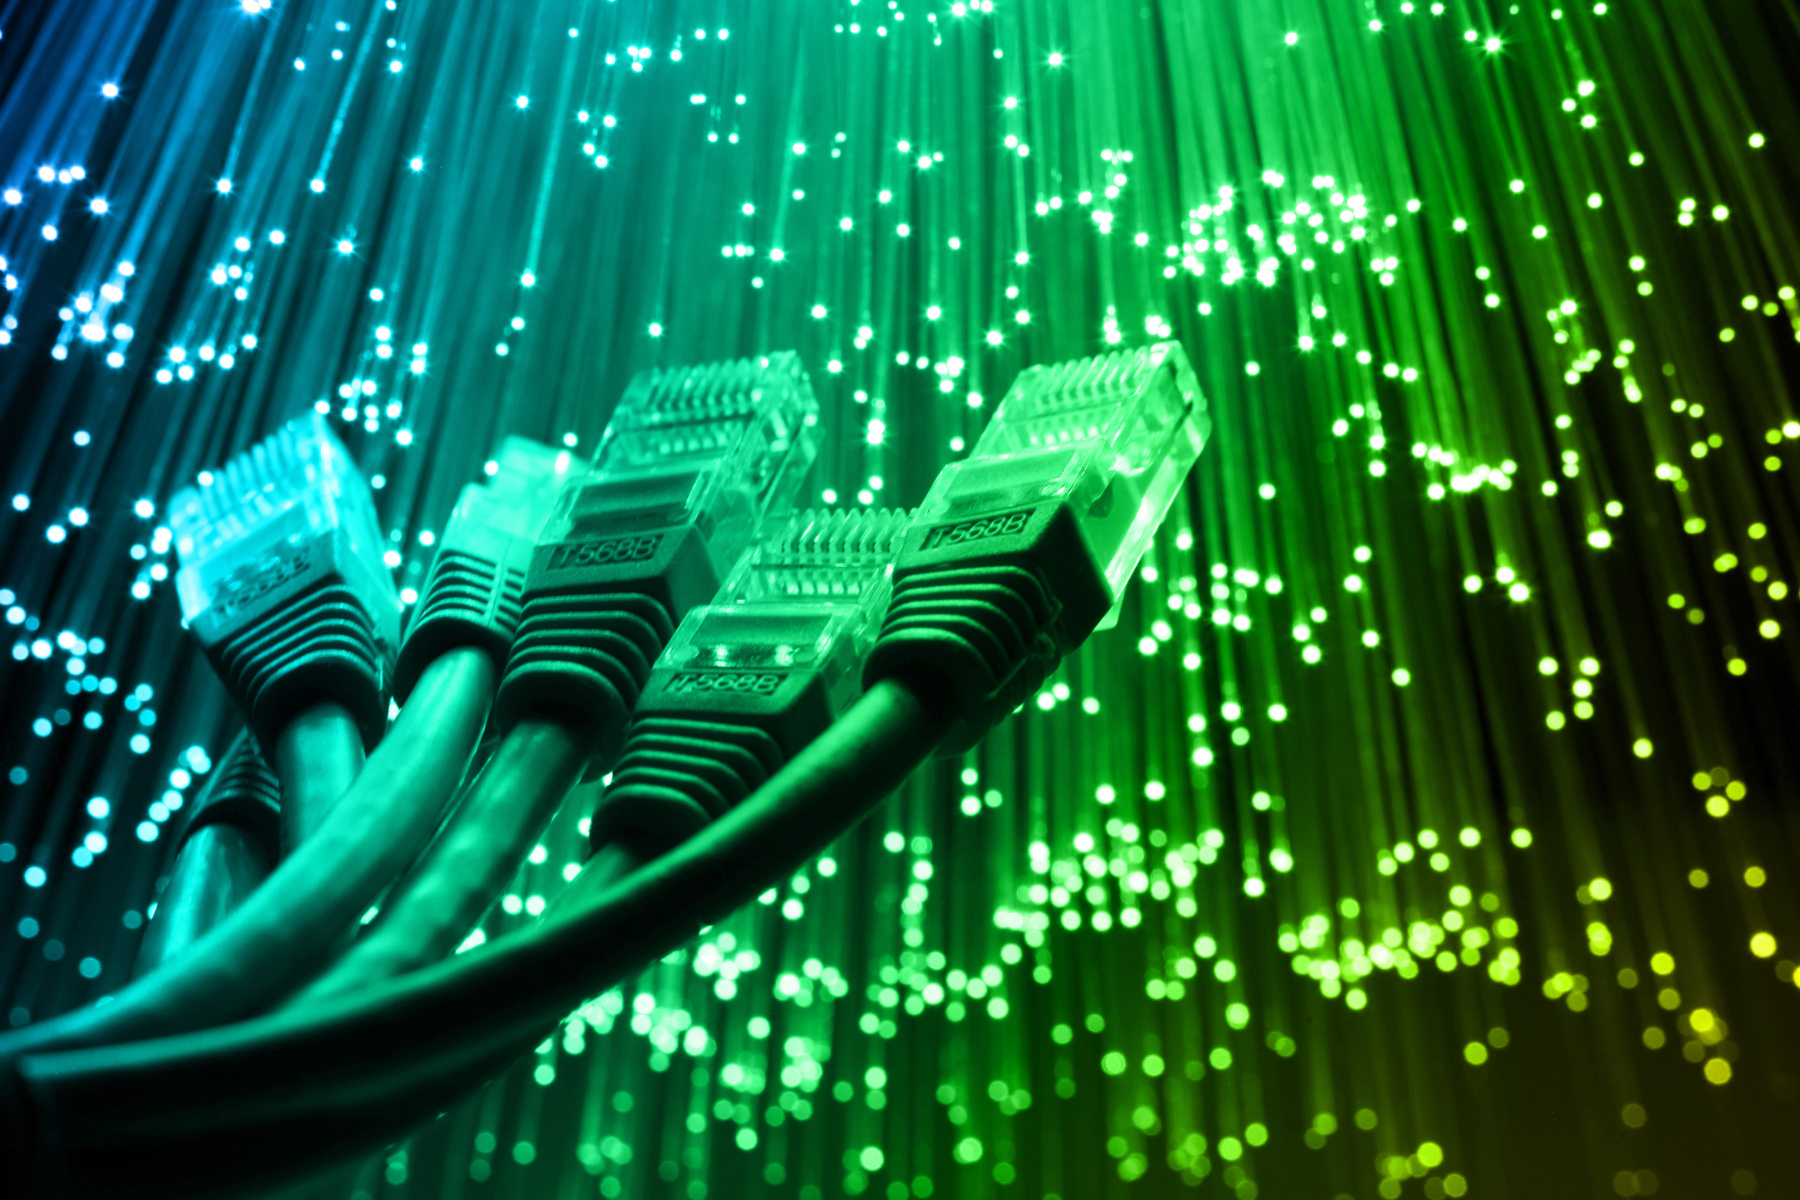 Gazelle Communications Specializes In FiberOptic CommunicationsLow voltage cabling connects businesses more than ever in the twenty-first century. Let us help you design and install data, phone, security, and much more!